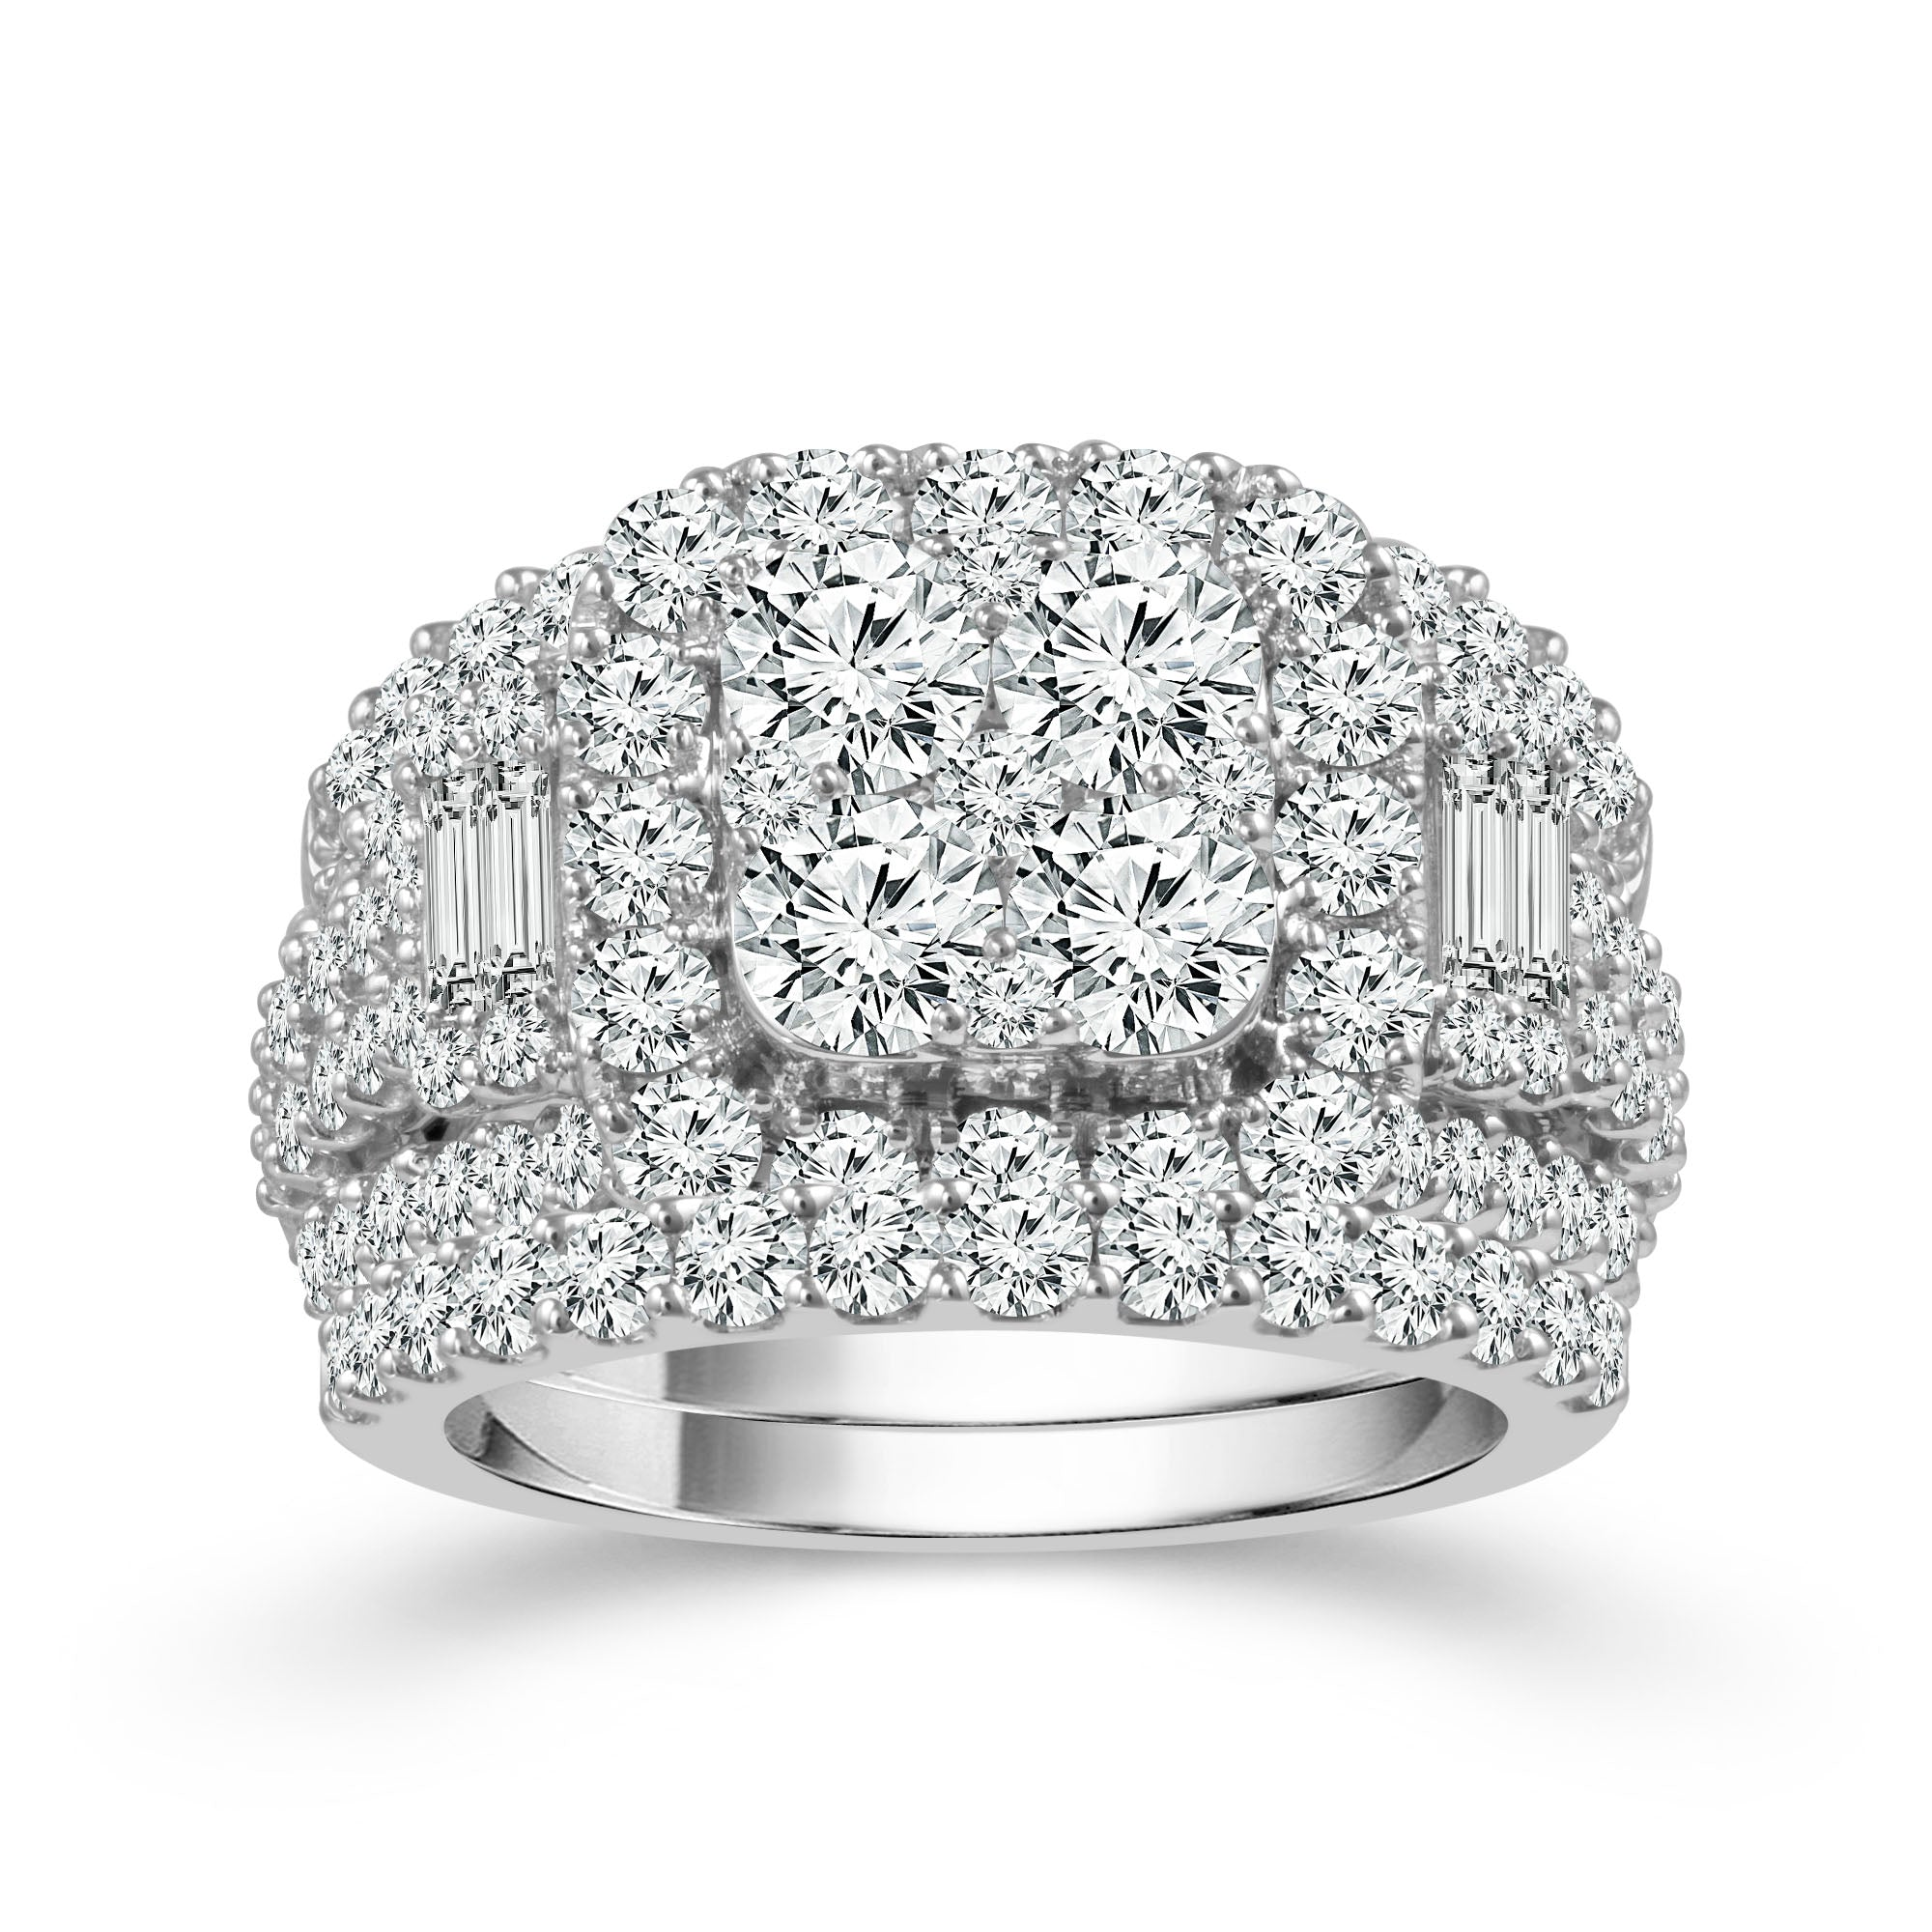 14K White Gold 4.00 CTW Diamond Ring with Bands